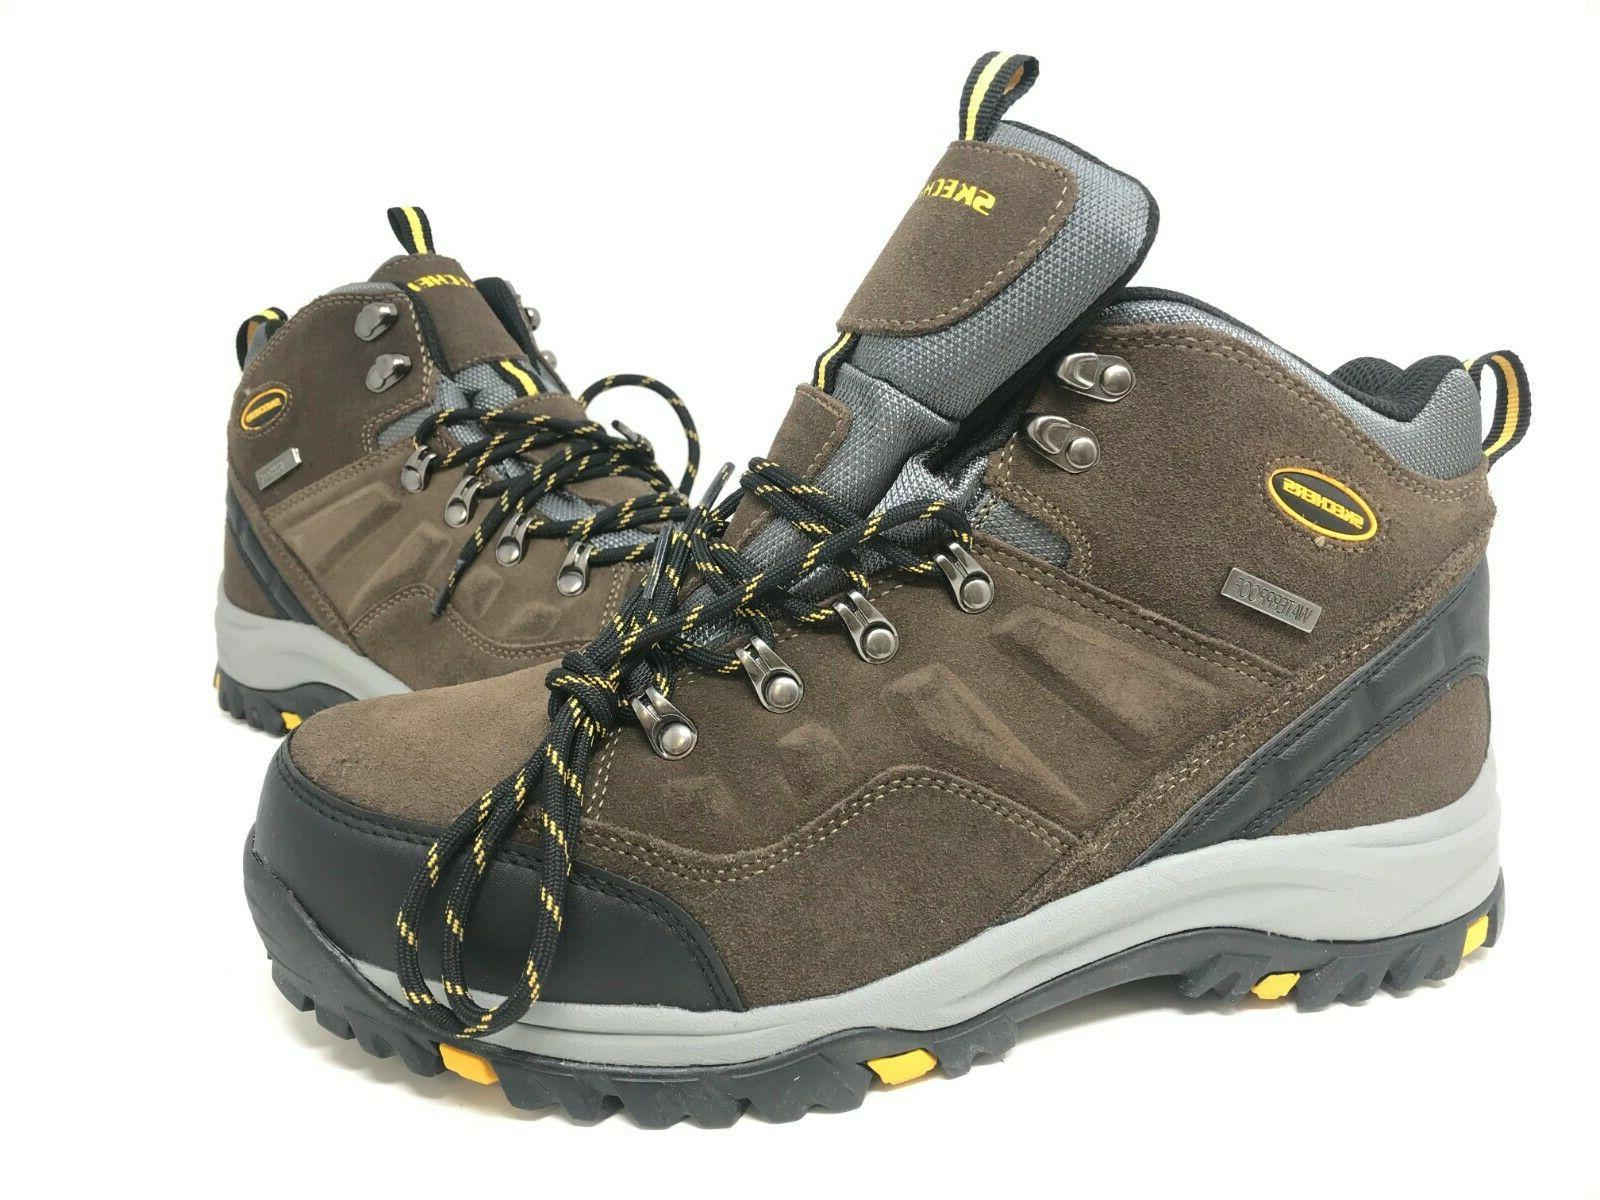 new men s relment pelmo hiking boot